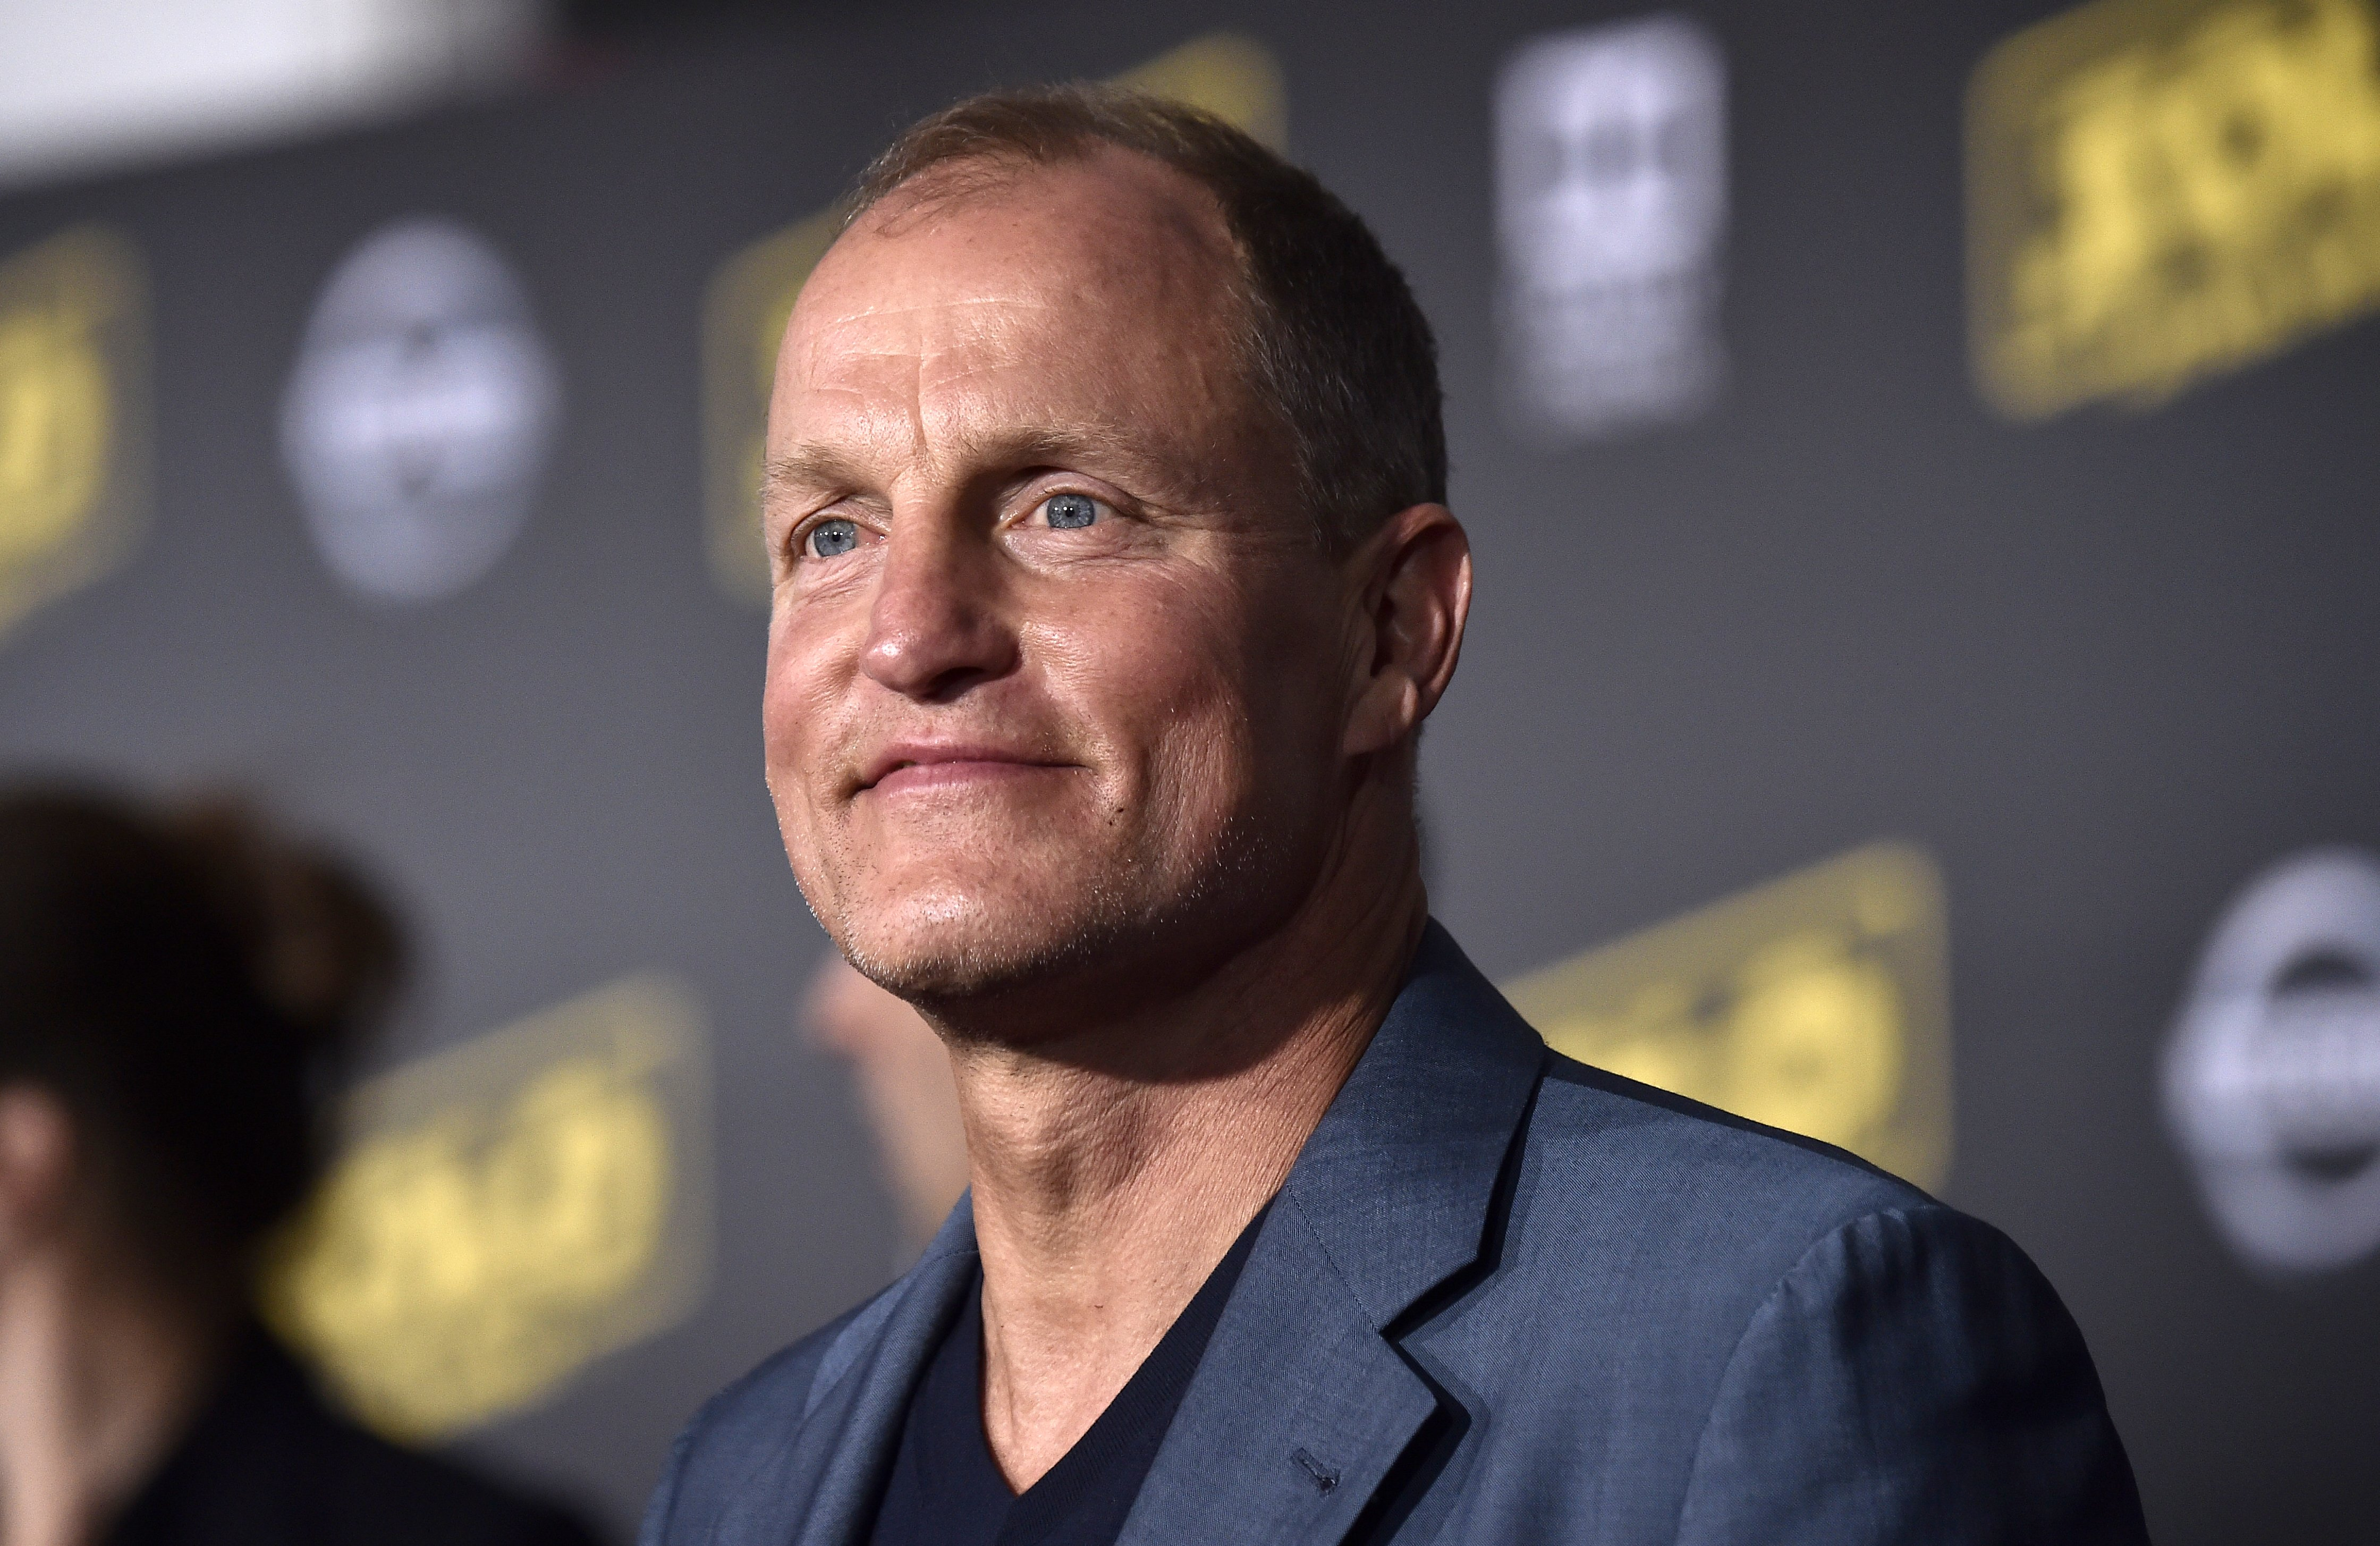 """Woody Harrelson pictured at the premiere of Disney Pictures and Lucasfilm's """"Solo: A Star Wars Story,"""" 2017, Los Angeles, California.   Photo: Getty Images"""